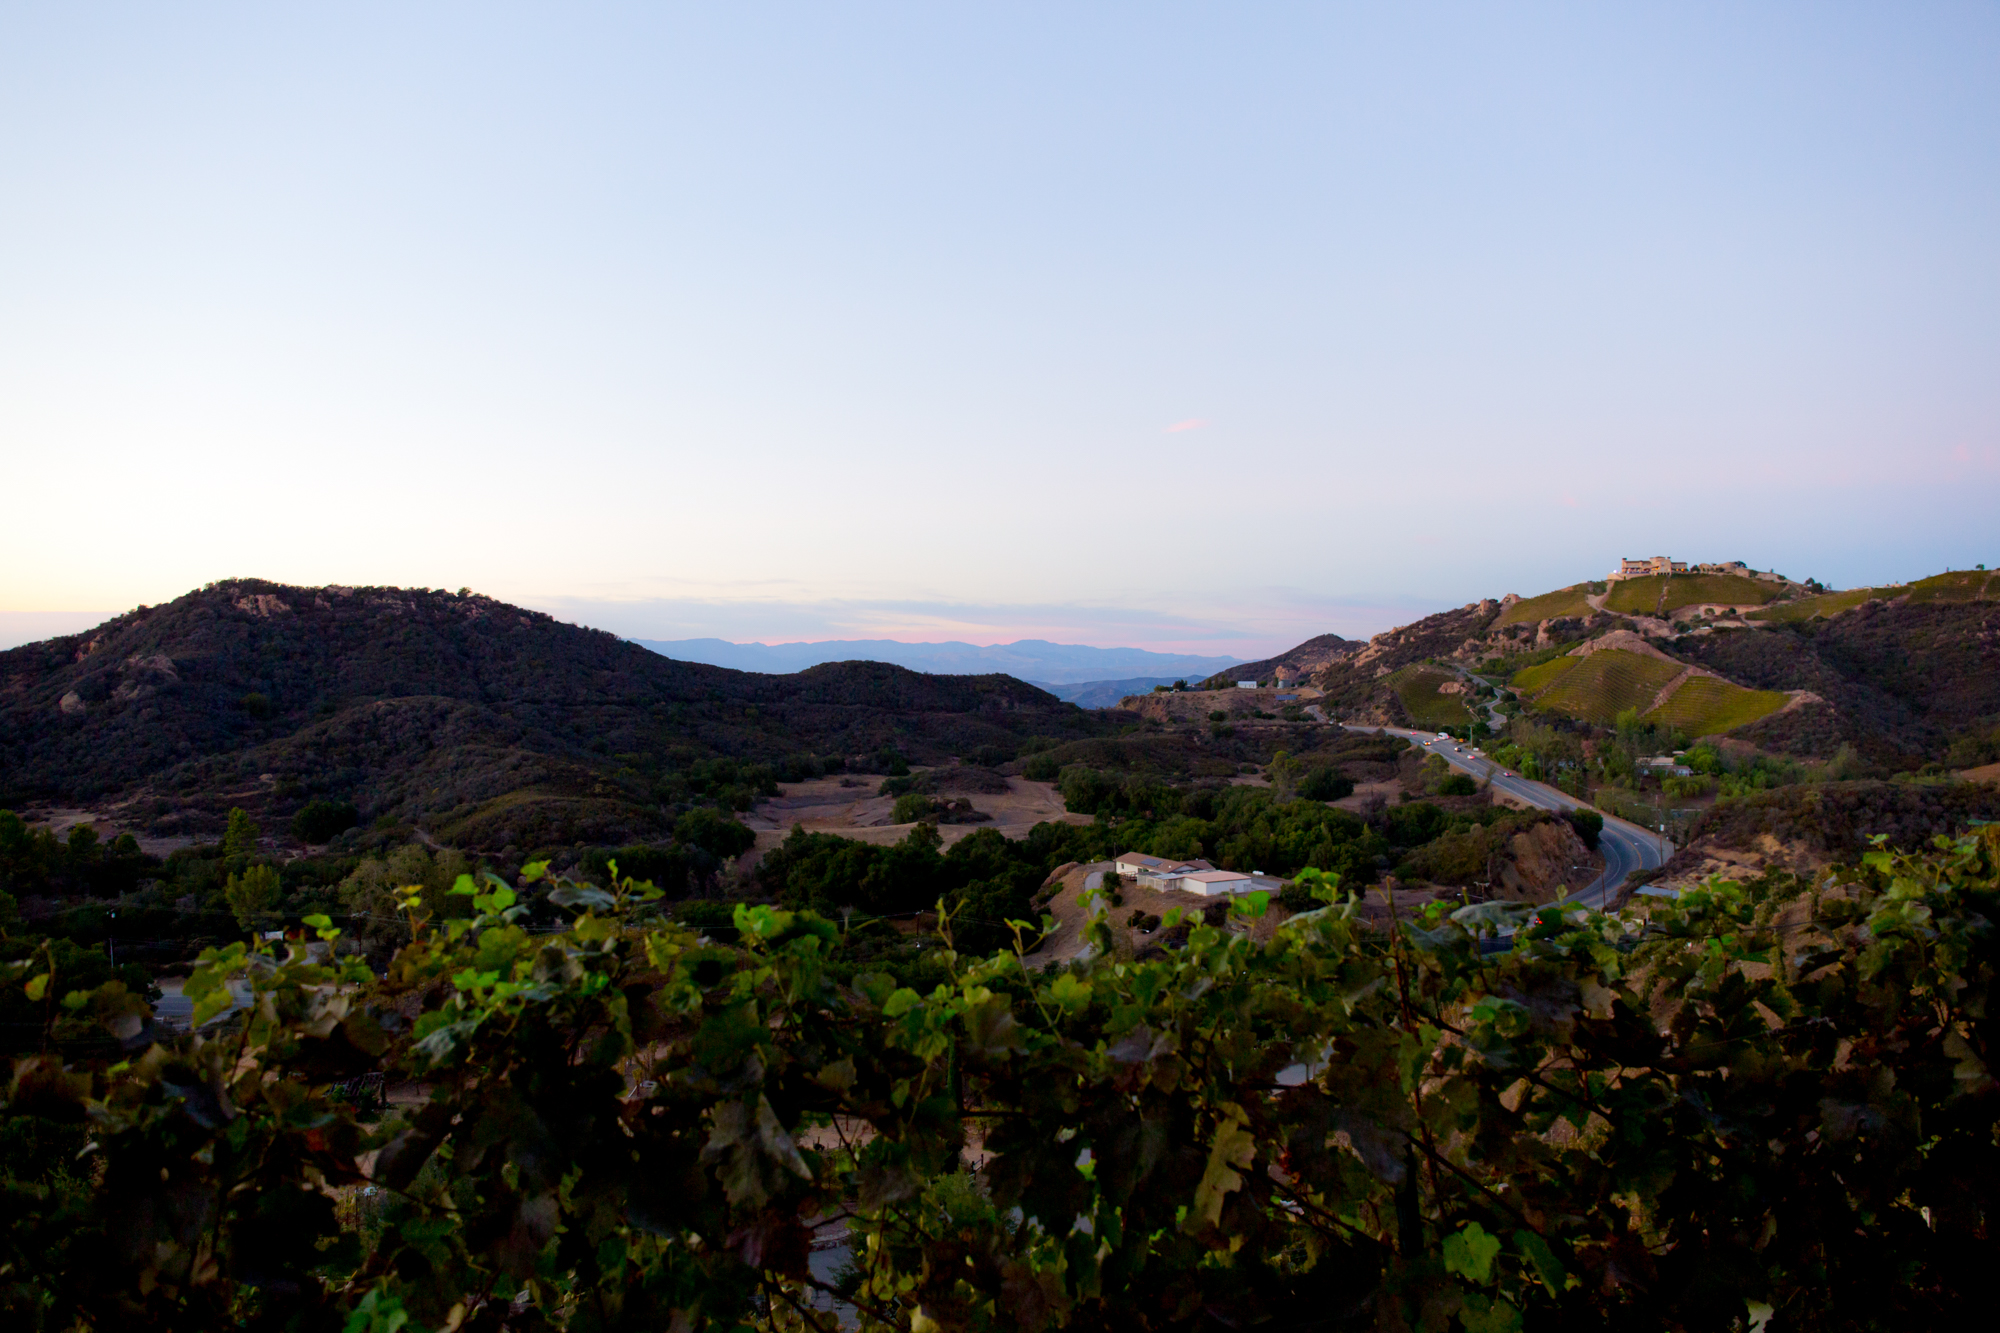 029_CarlyGaebe_SteadfastStudio_WeddingPhotography_Malibu_LosAngeles_LA_California_Winery_Hilltop_CieloFarms_Vineyard.jpg